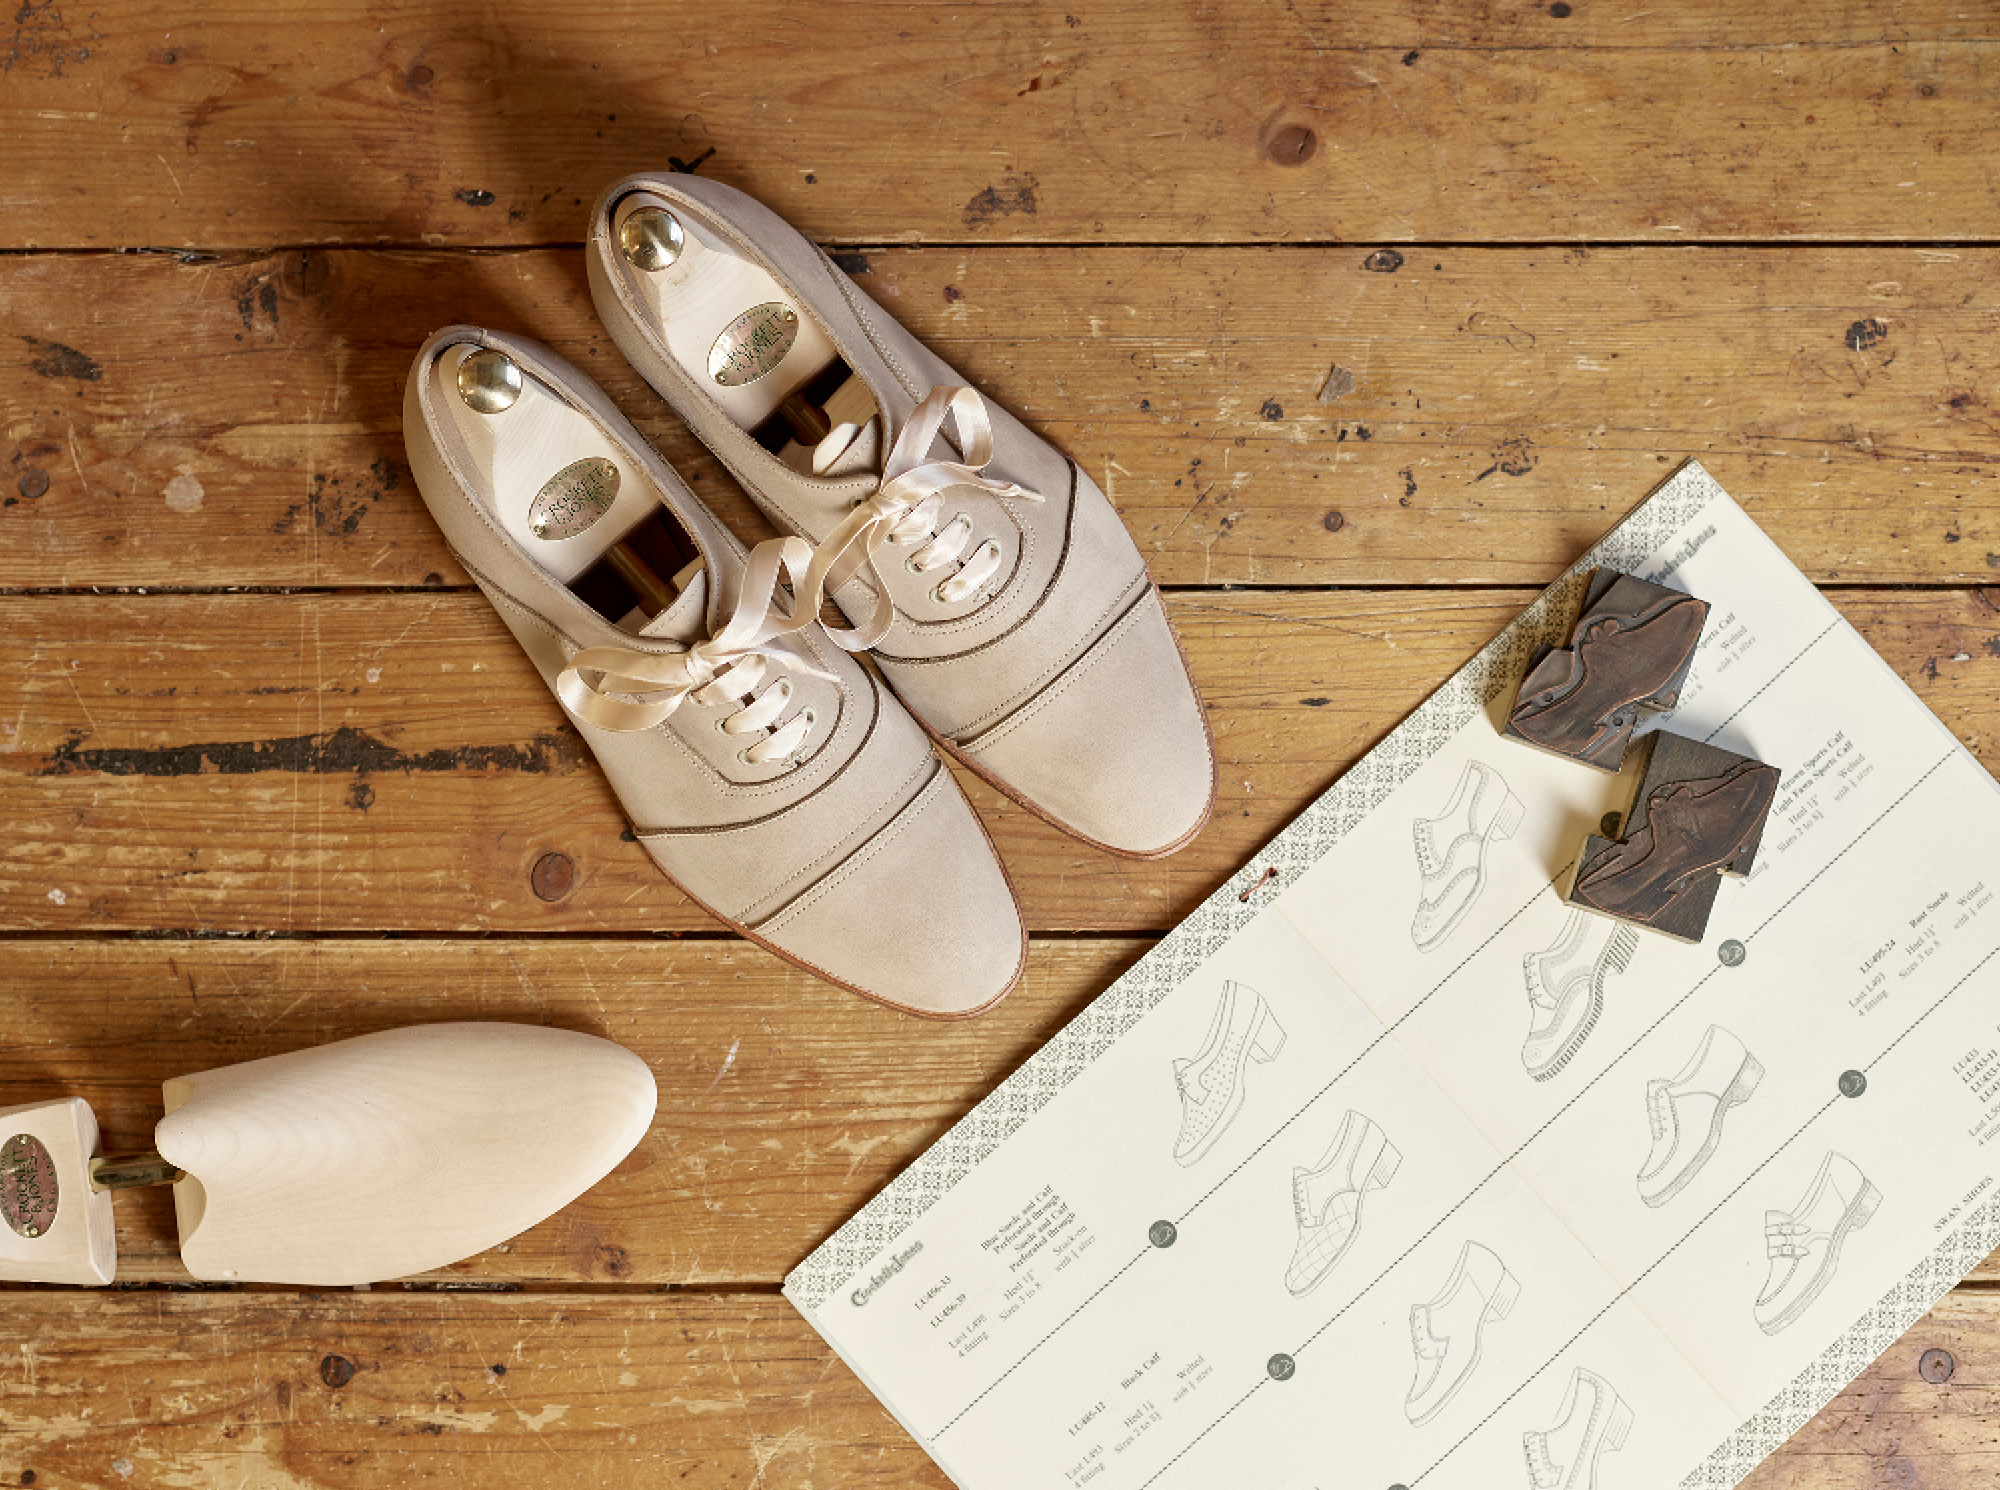 Clare Jones designs women's shoes for Crockett & Jones